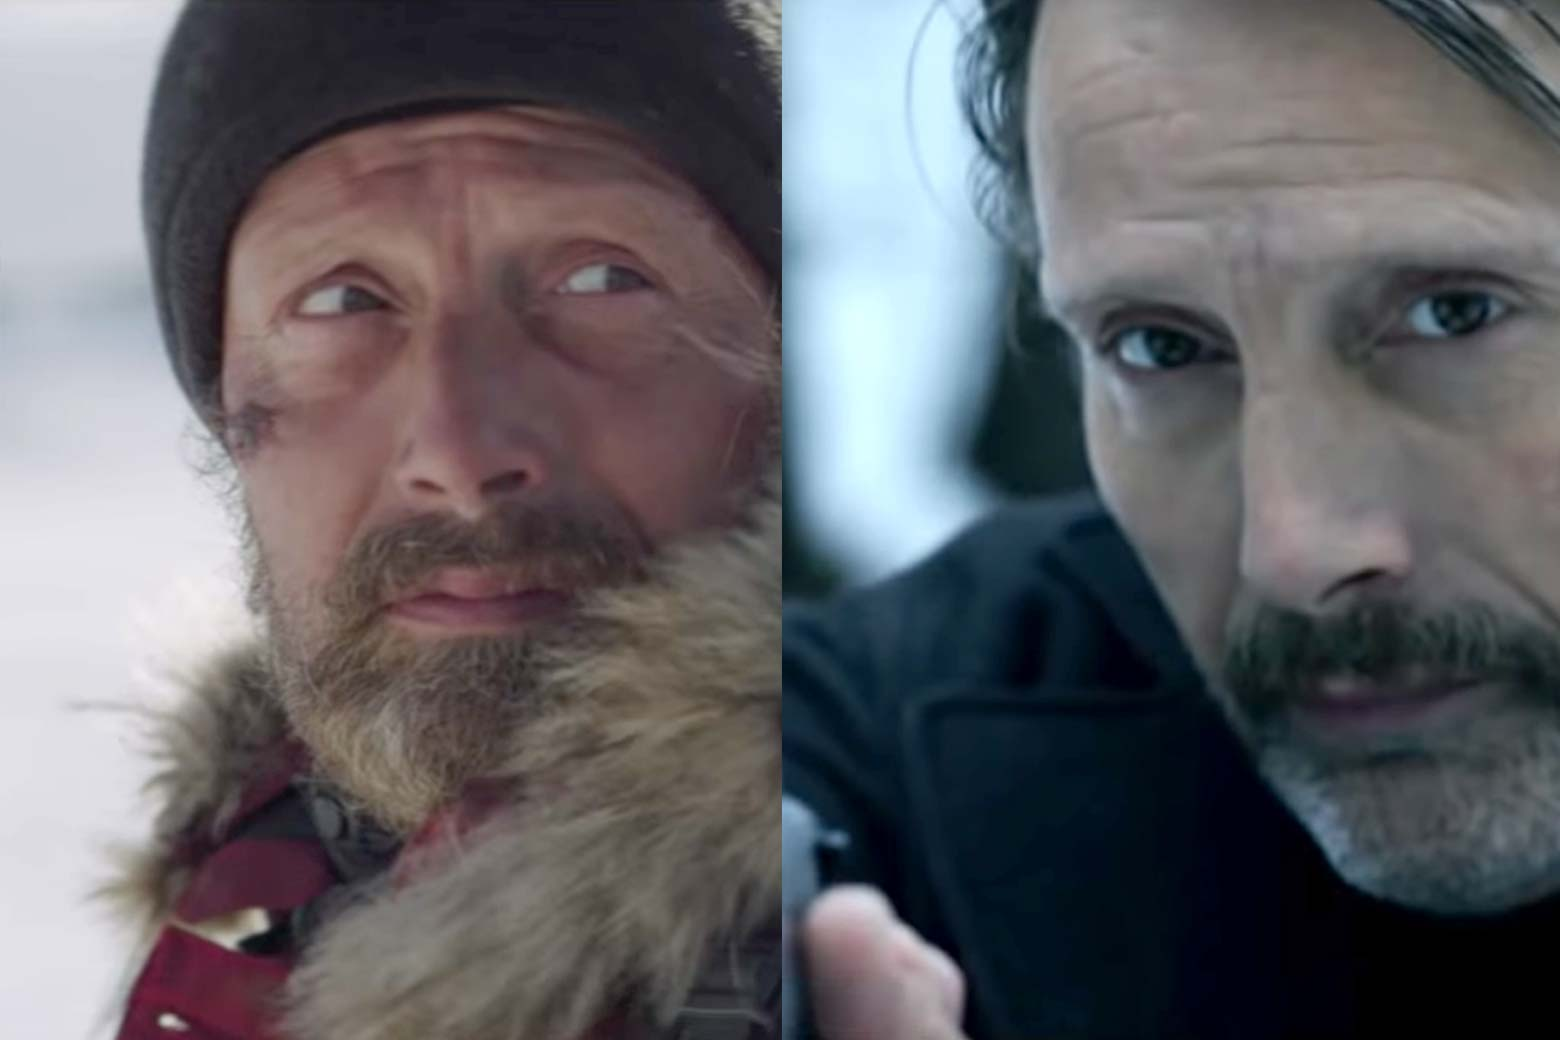 Mads Mikkelsen wears a hat and beard in Arctic. Mads Mikkelsen holds a gun in Polar.